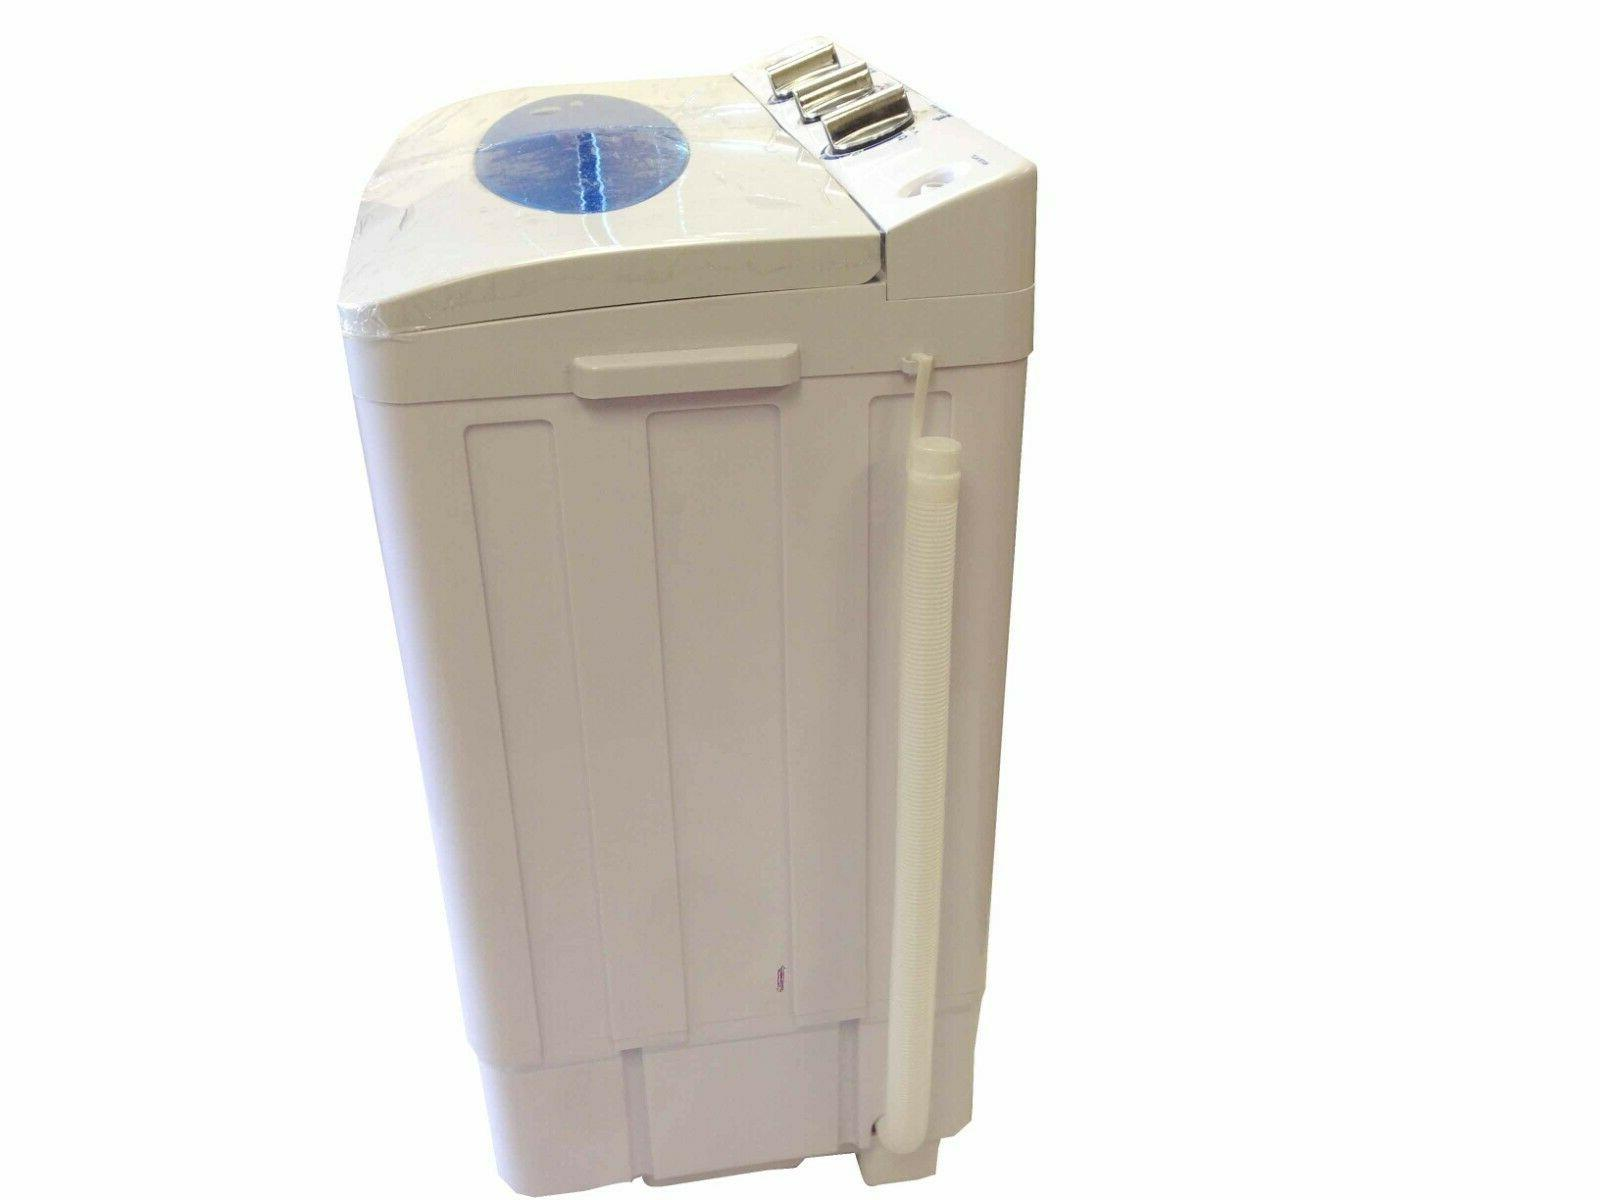 PORTABLE SMALL WASHING WASHER DRYER 5.0KG